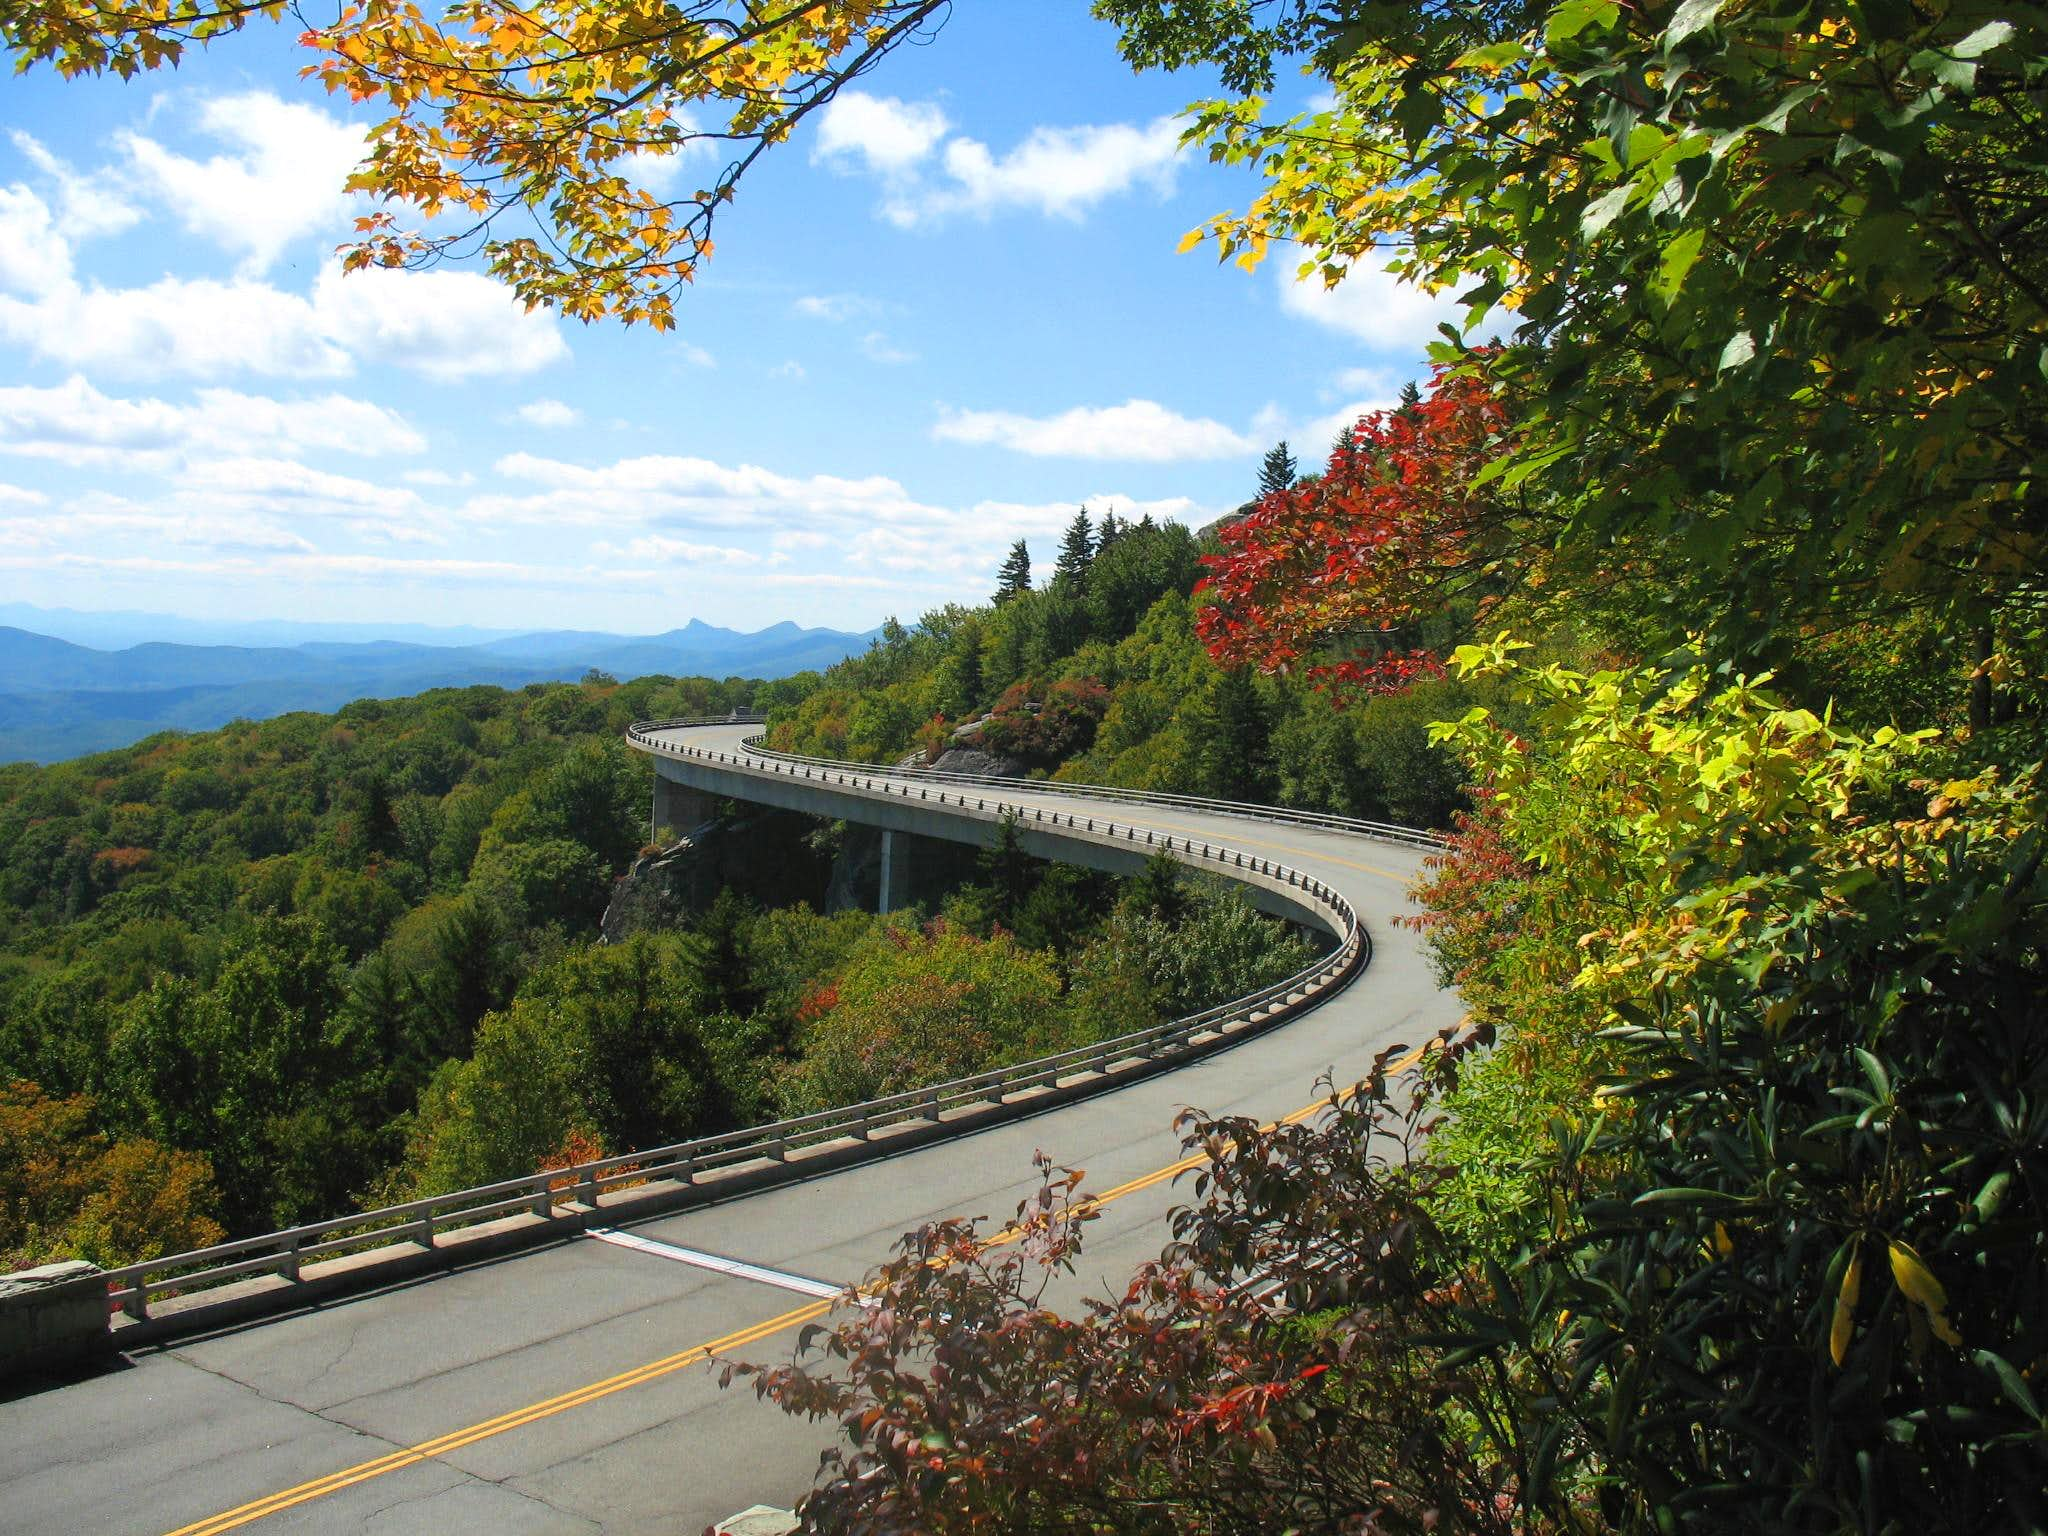 Scrapbook of the Blue Ridge Parkway - Roanoke to the Smokies